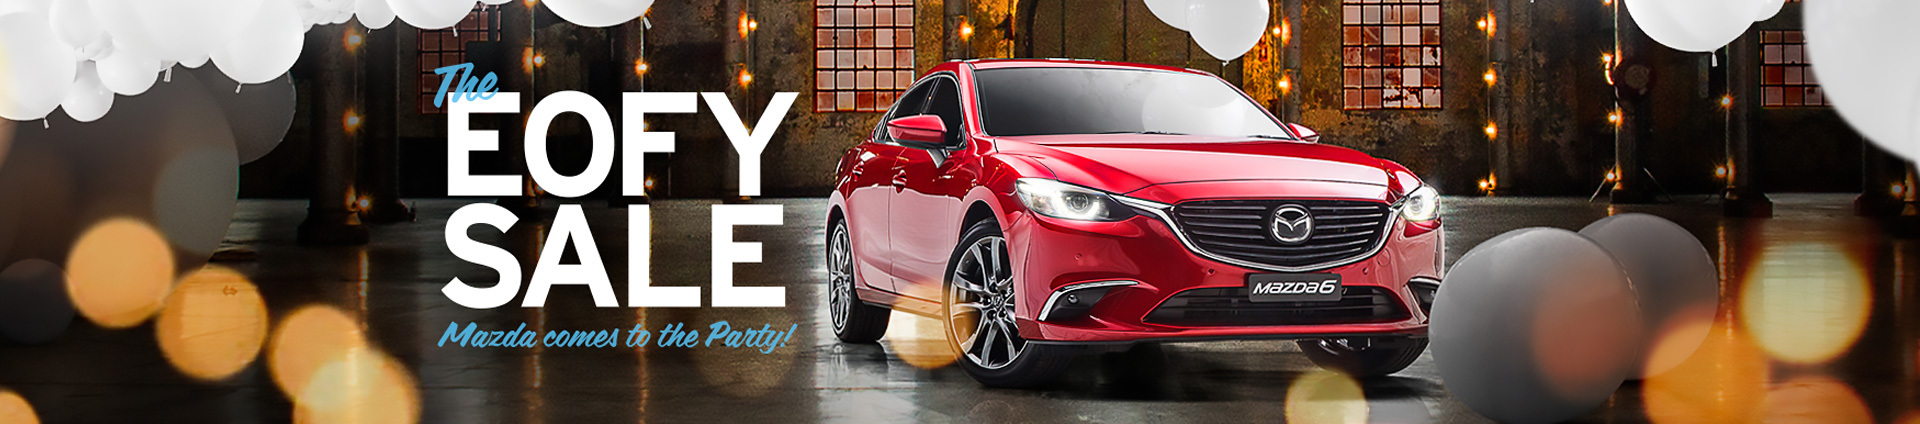 Mazda - The EOFY Sale, Mazda Comes To The Party